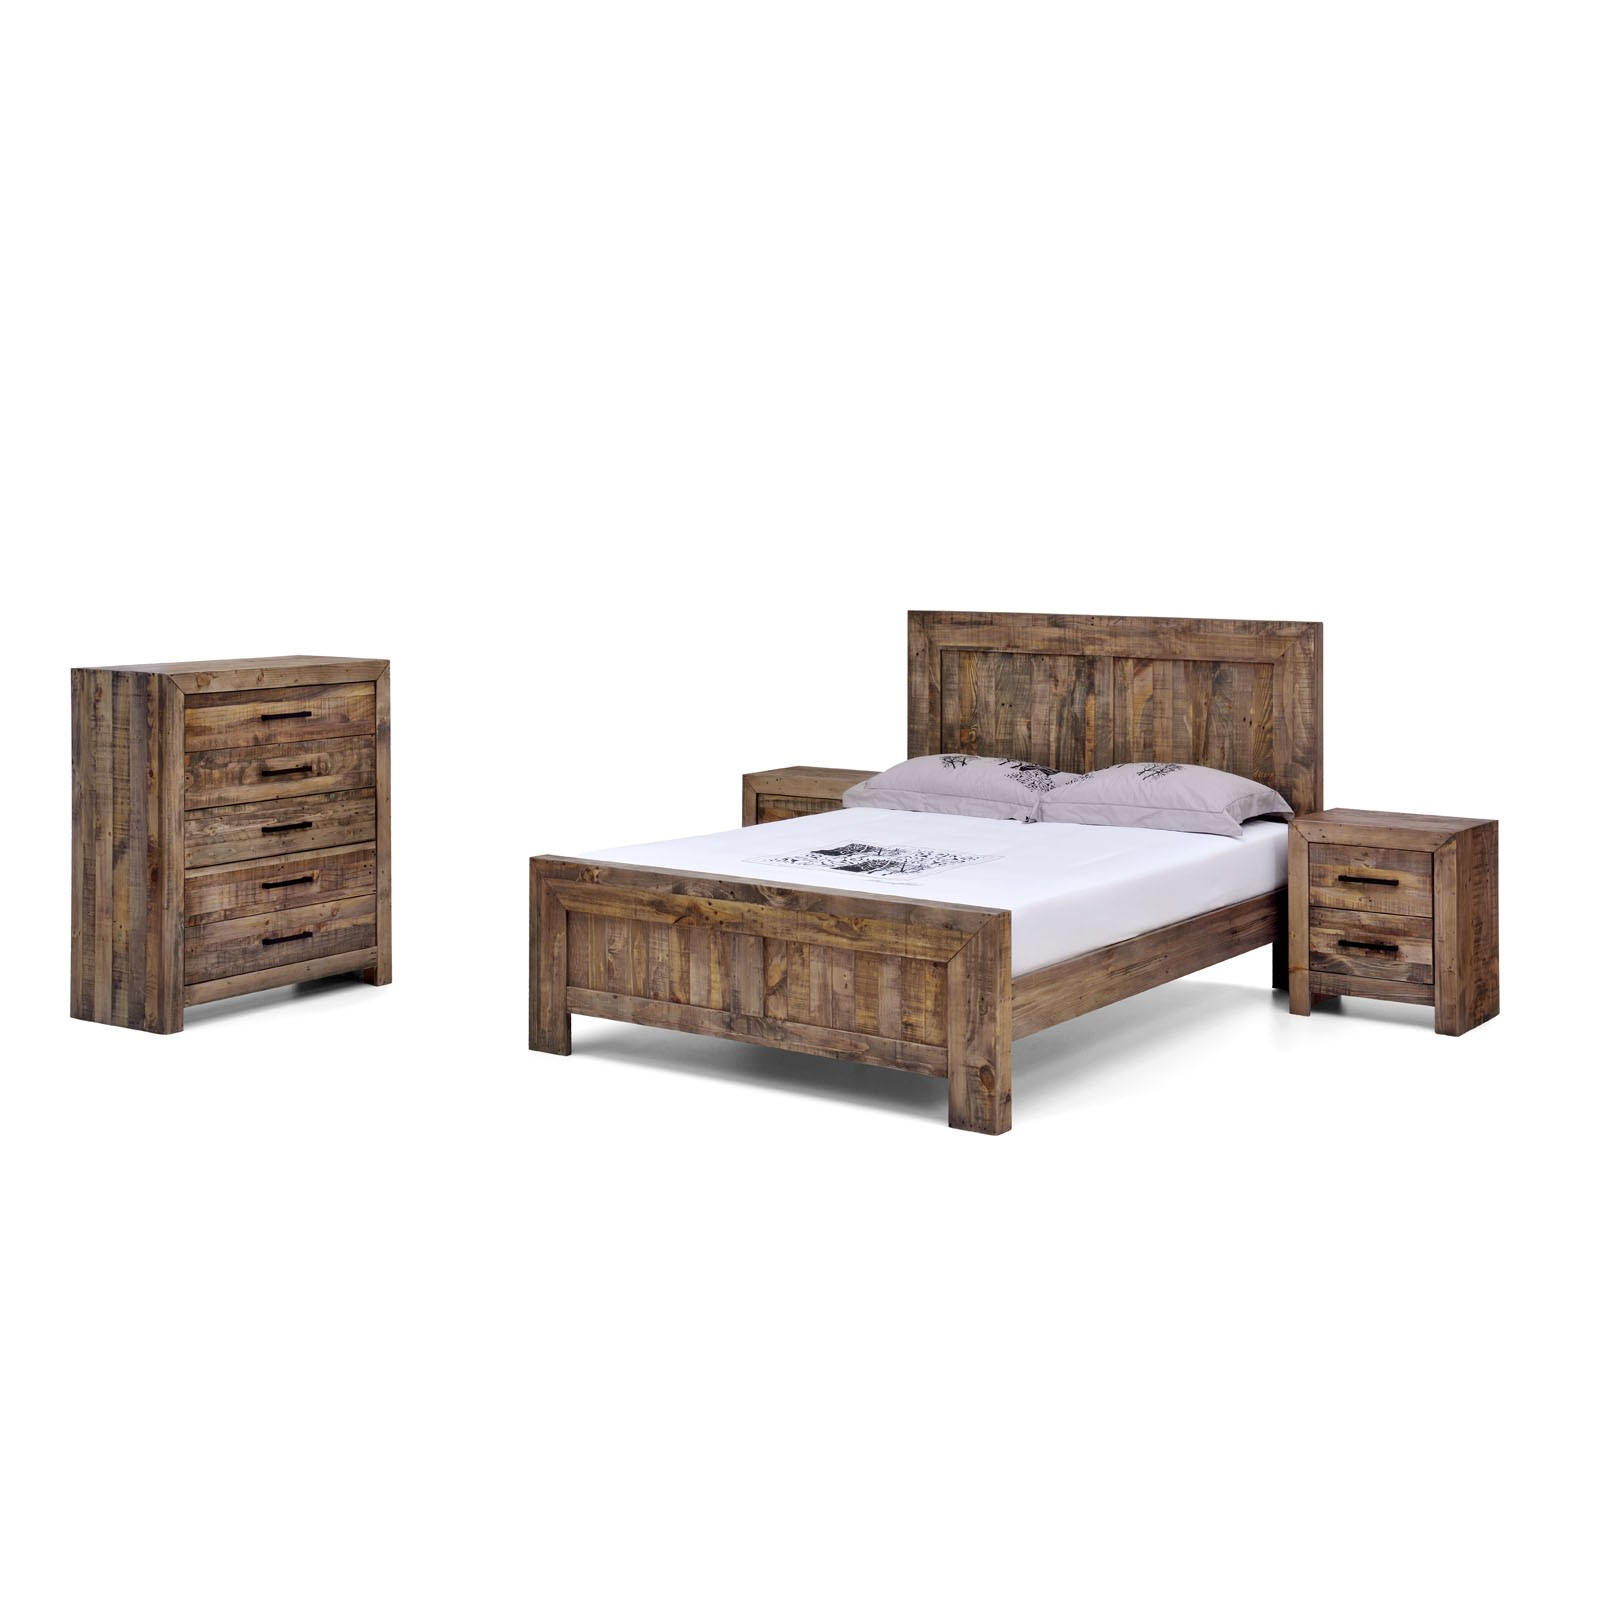 Solid Timber Bedroom Furniture Boston Brand New Recycled Solid Pine Rustic Timber King Size Bed Frame